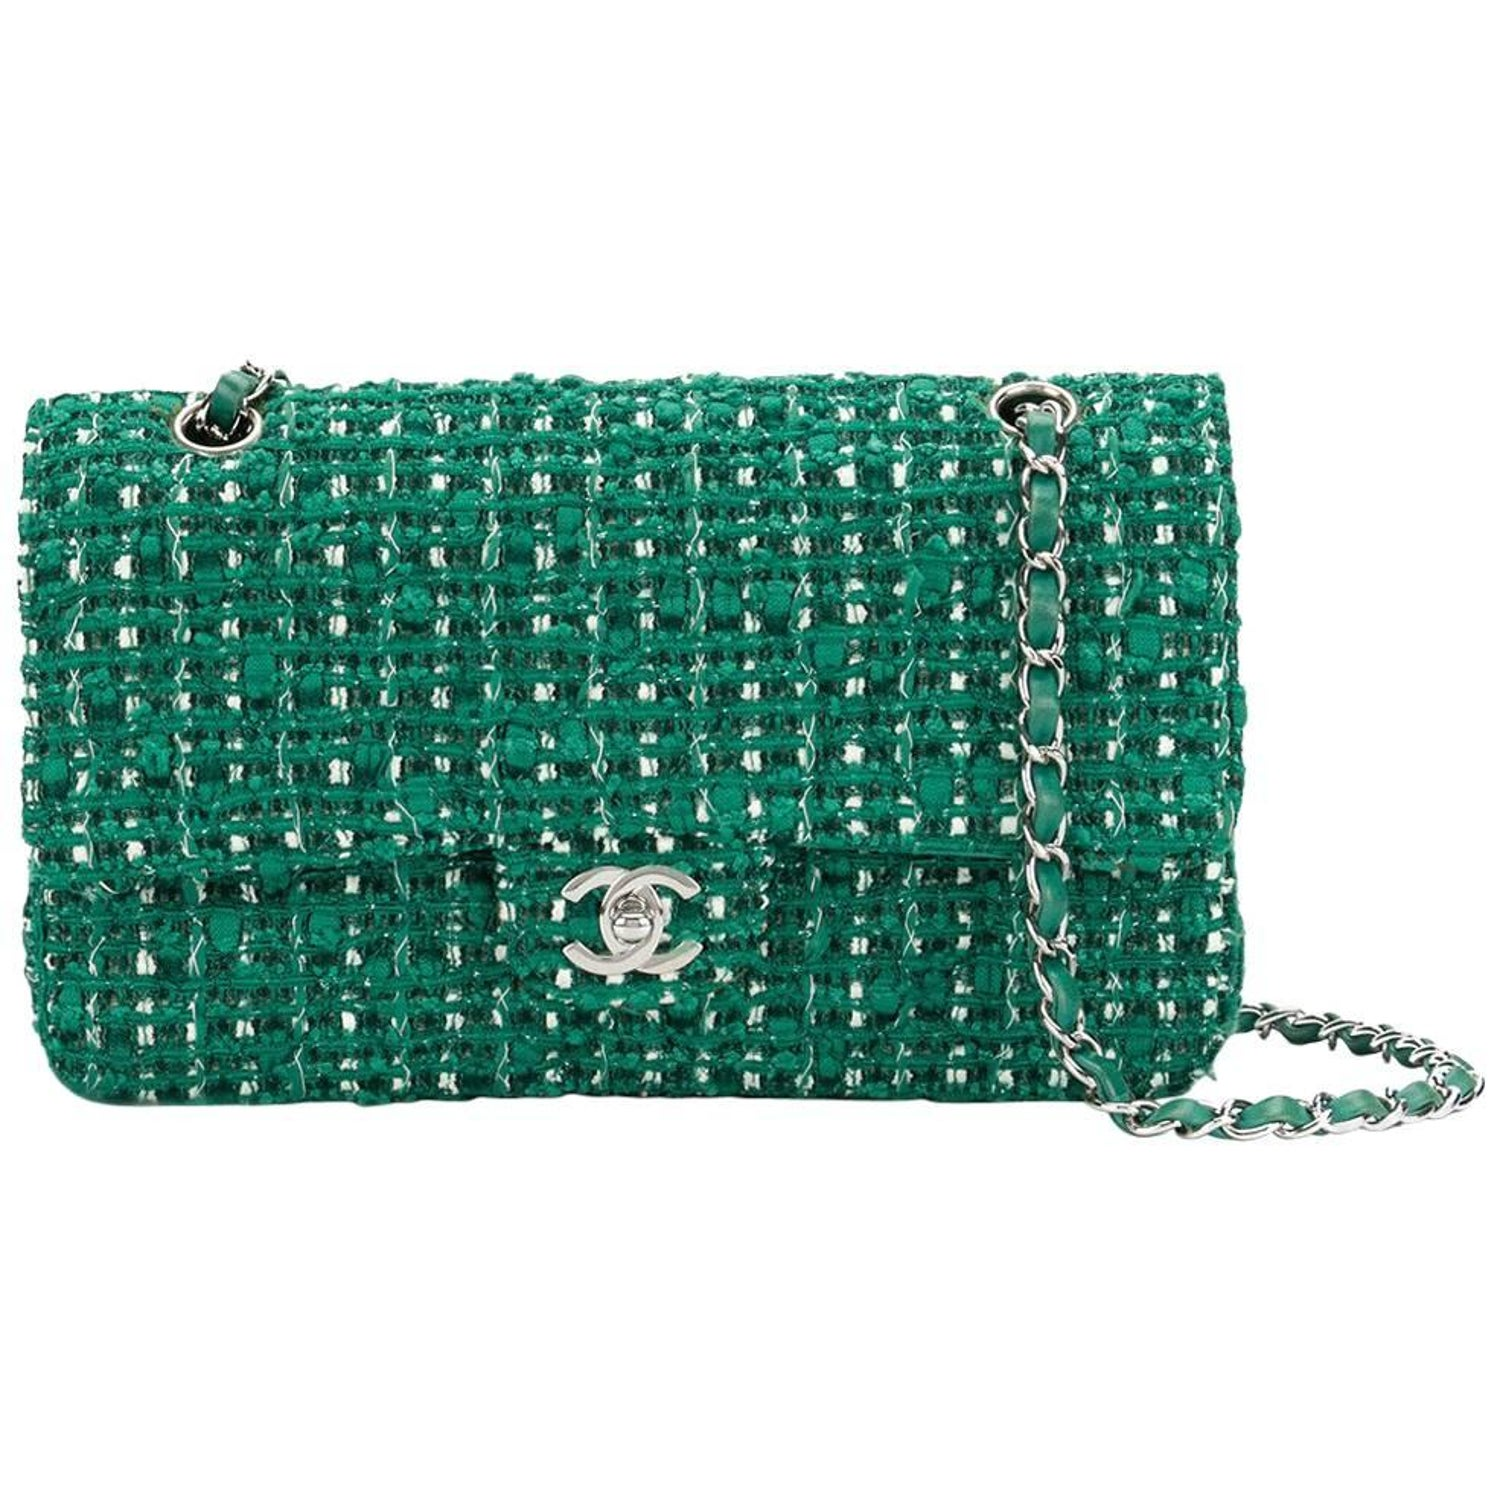 6c307f1ccc3e Chanel Green Tweed Vintage Bag, 2000s at 1stdibs